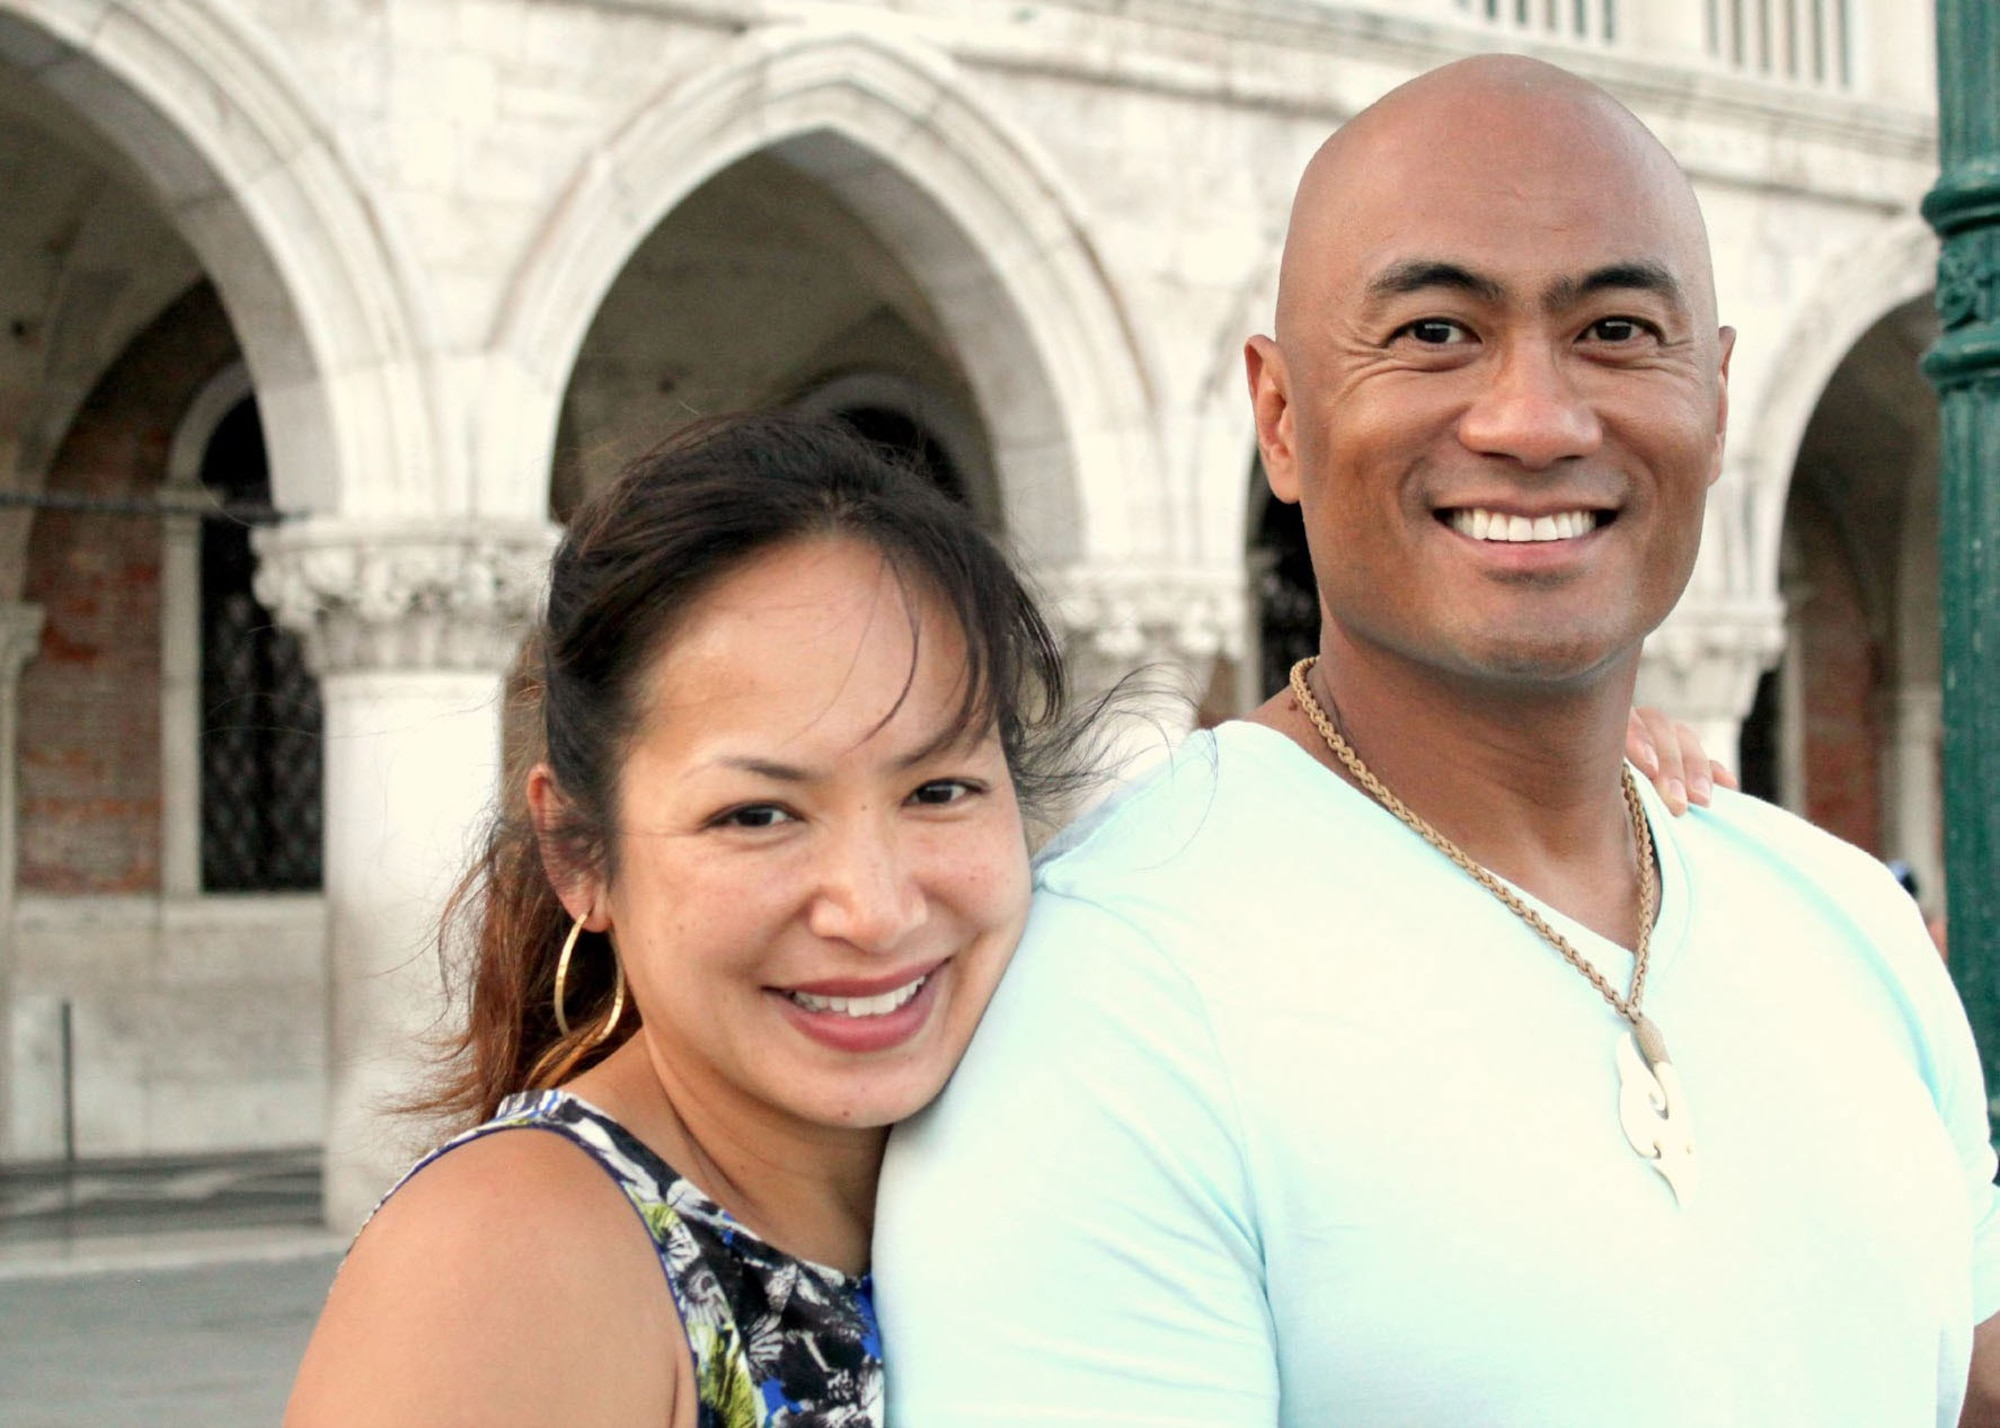 """U.S. Air Force Lt. Col. Lt. Col. Melchizedek """"Kato"""" Martinez poses with his wife, Gail, during a family vacation to Venice, Italy. The Martinez family's life was forever changed March 22, 2016, when Gail was tragically killed during the Brussels Airport bombing. (Courtesy photo)"""